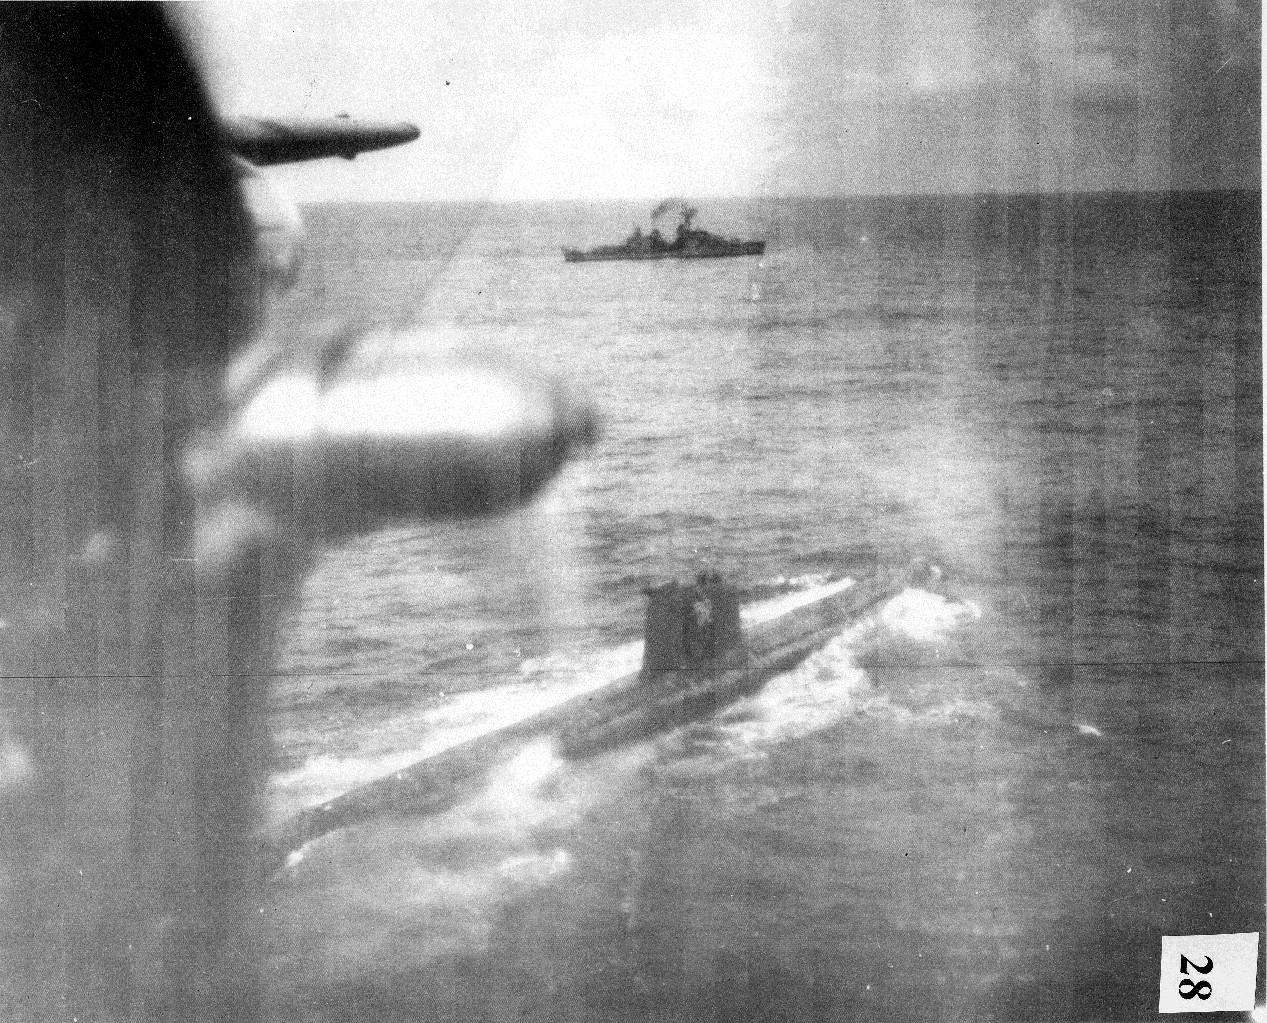 the n missile crisis the photographs 25 1962 u s navy surveillance of first soviet f class submarine to surface near the quarantine line conning tower number 945 soviet fleet